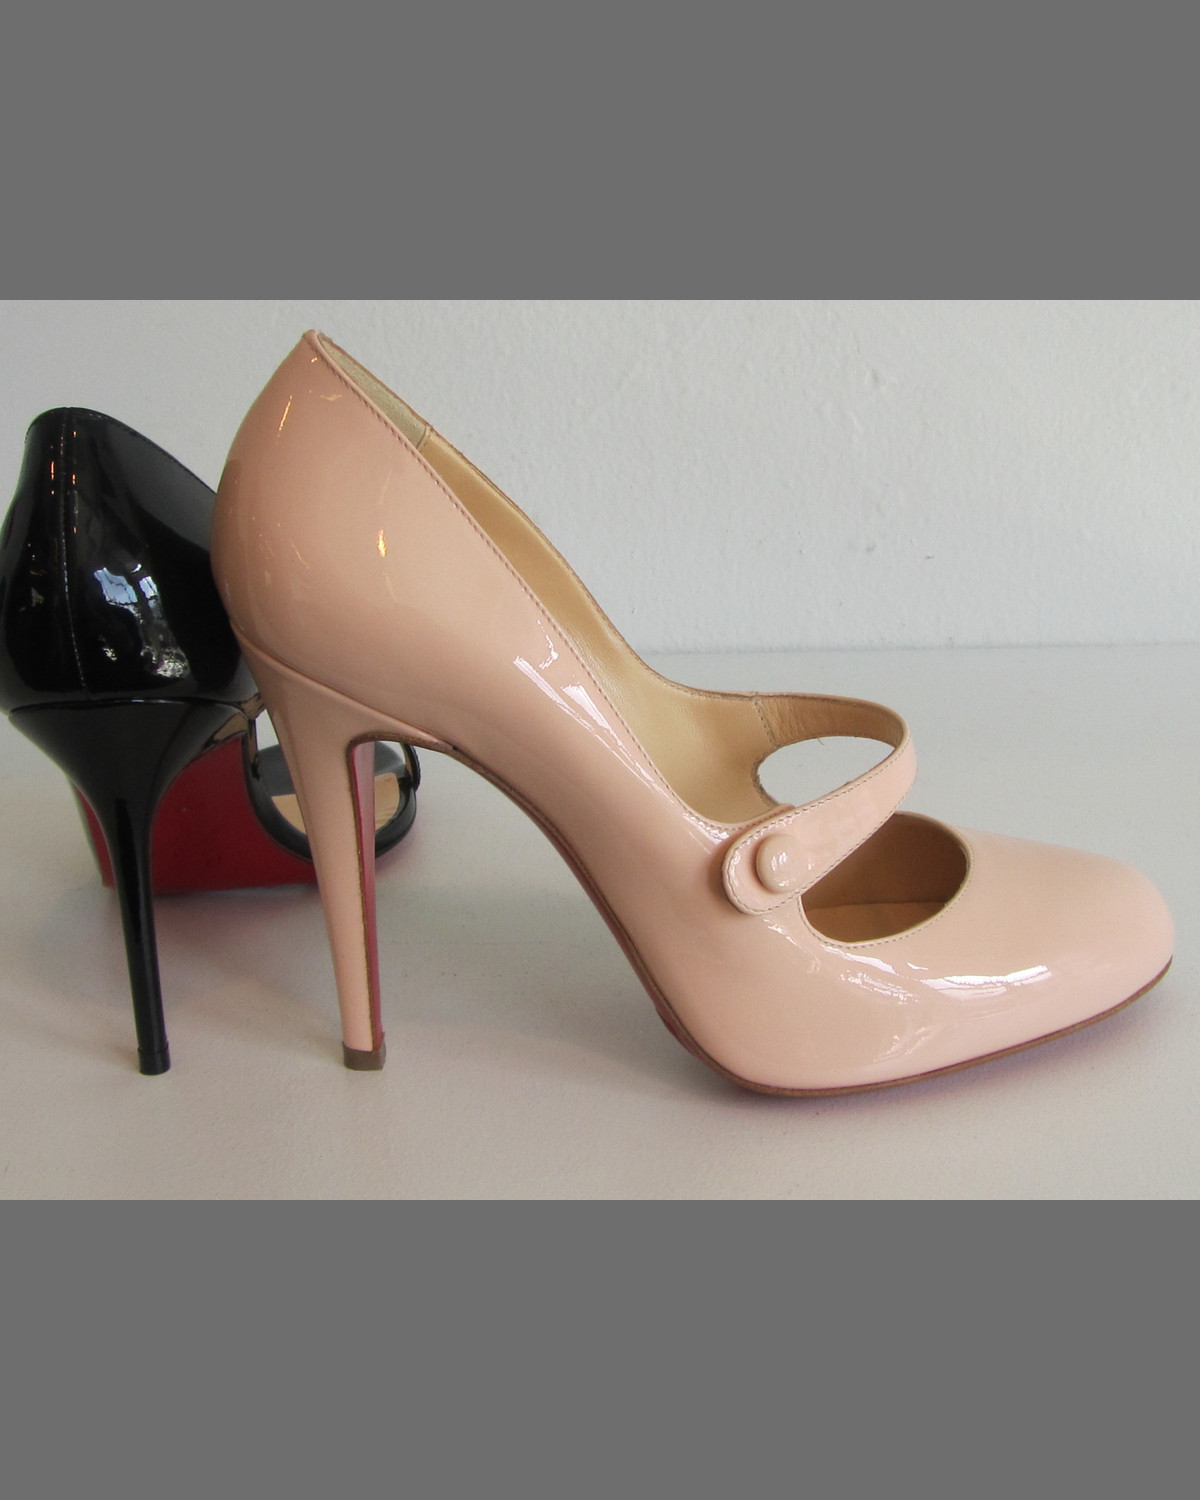 320a36513a0d Christian Louboutin Charleen Mary Jane Red Sole Pump